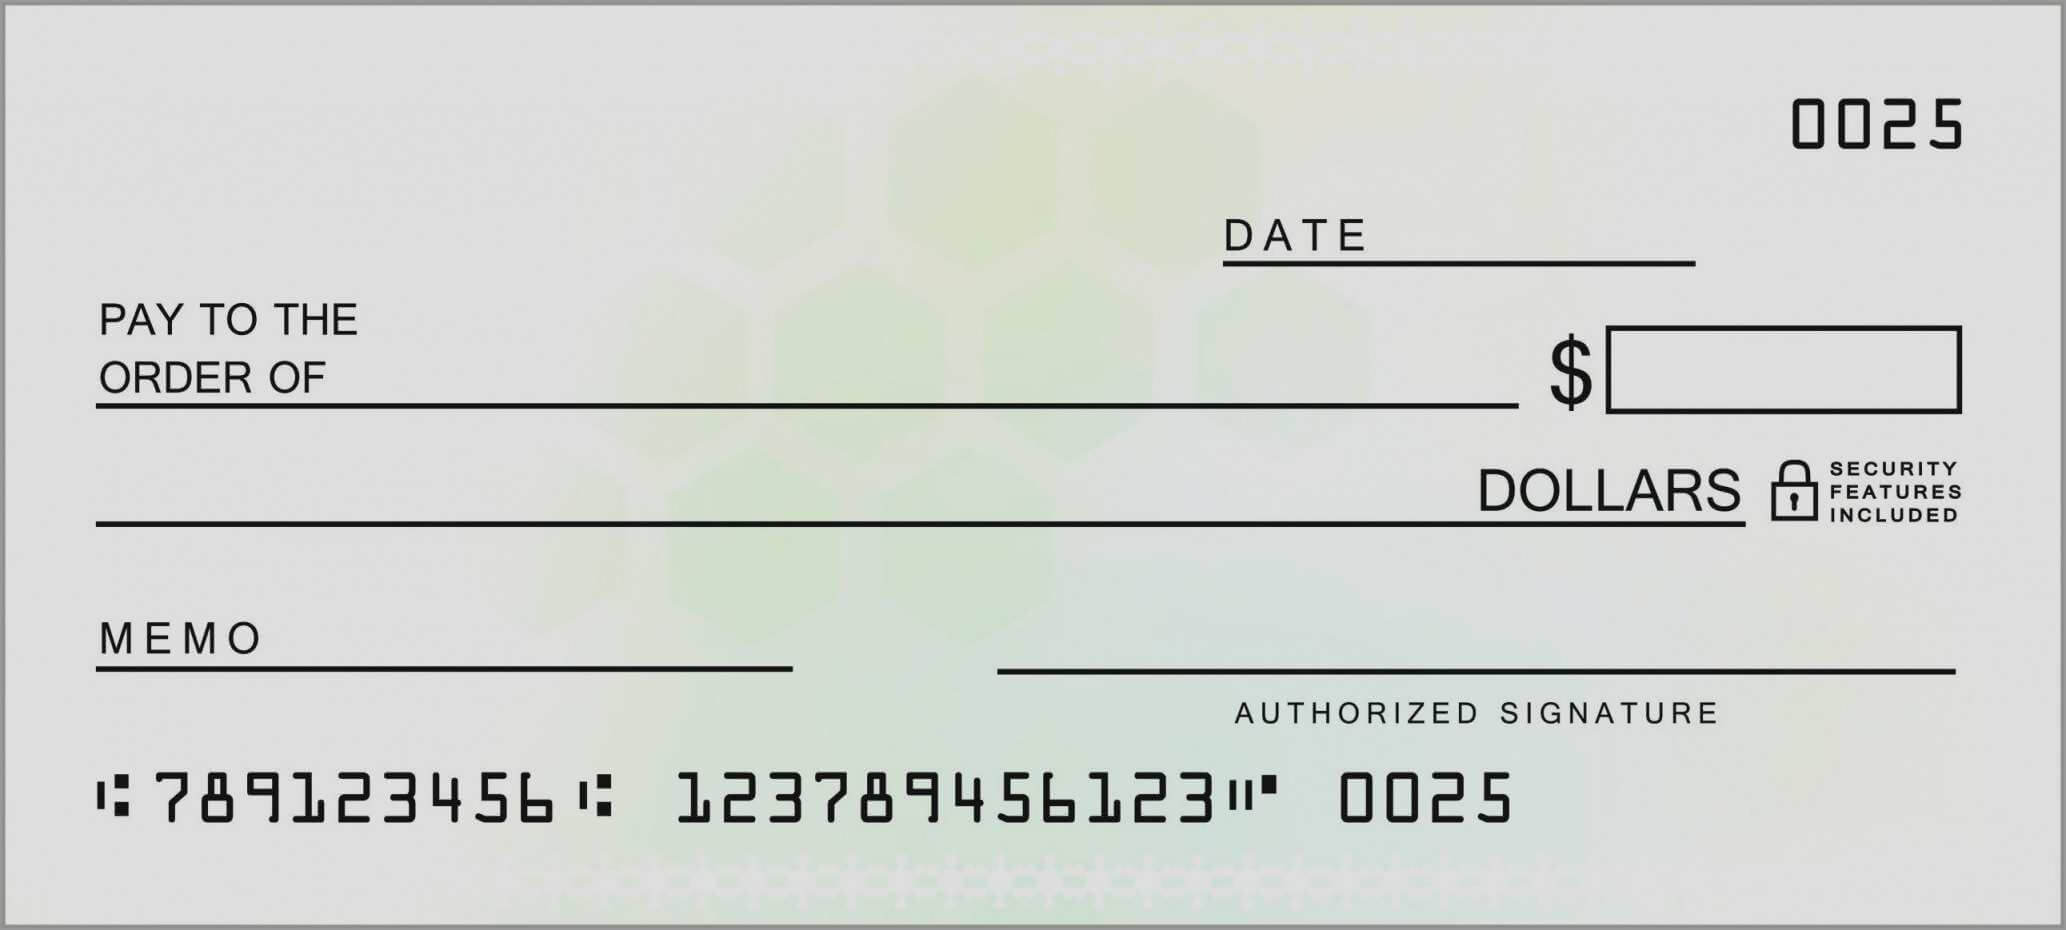 019 Template Ideas Free Blank Check Editable Cheque Fabulous Within Blank Check Templates For Microsoft Word